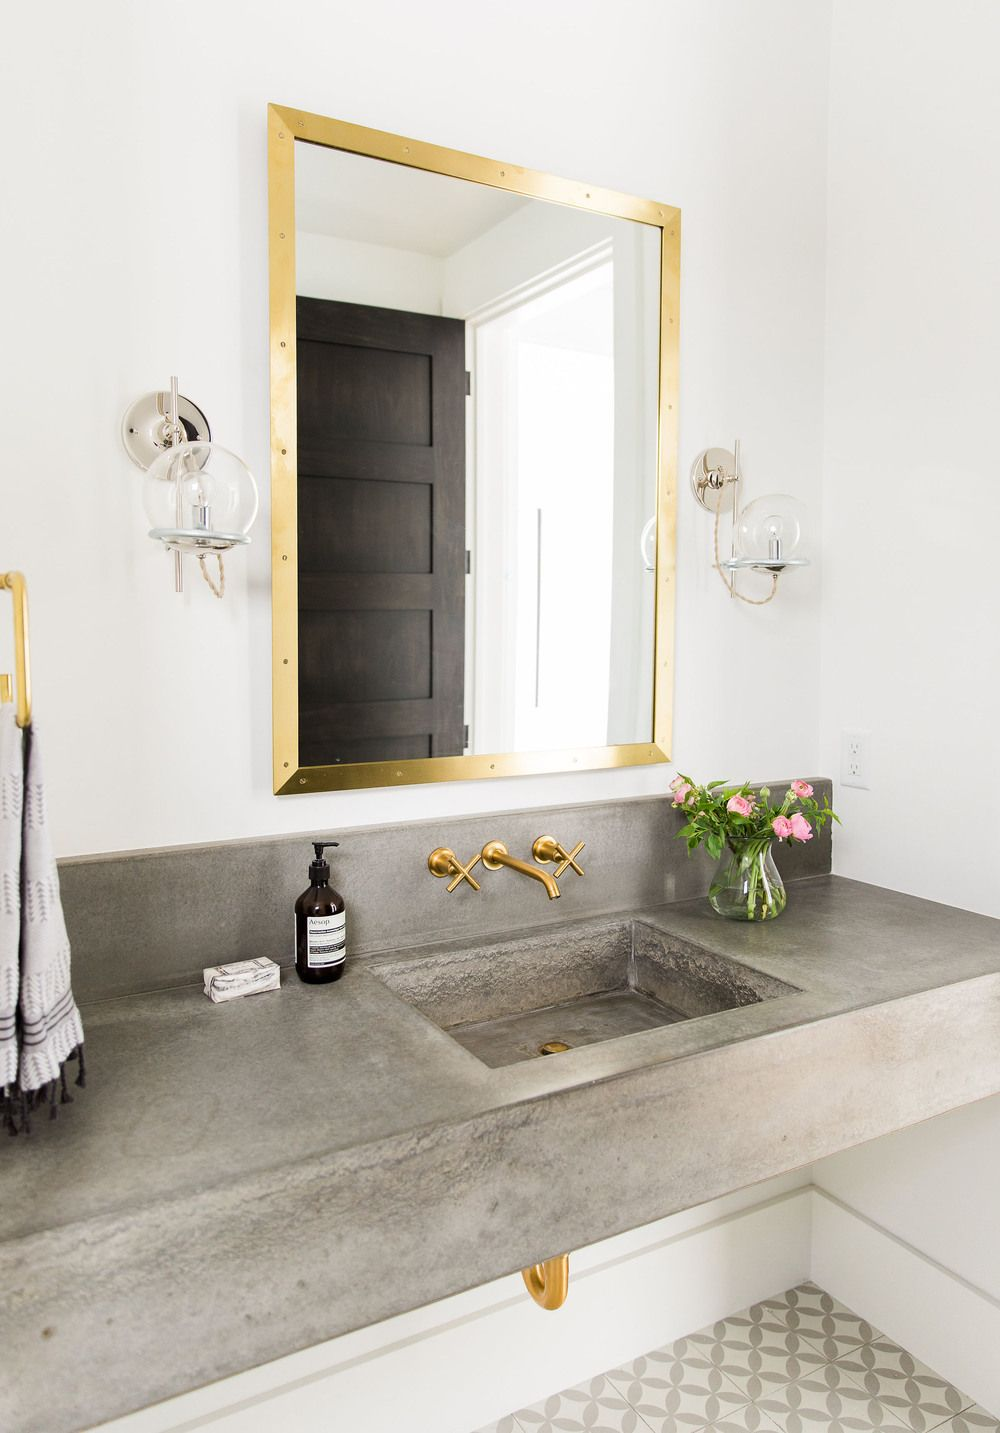 Floating Concrete Sink And Brass Fixtures || Studio McGee